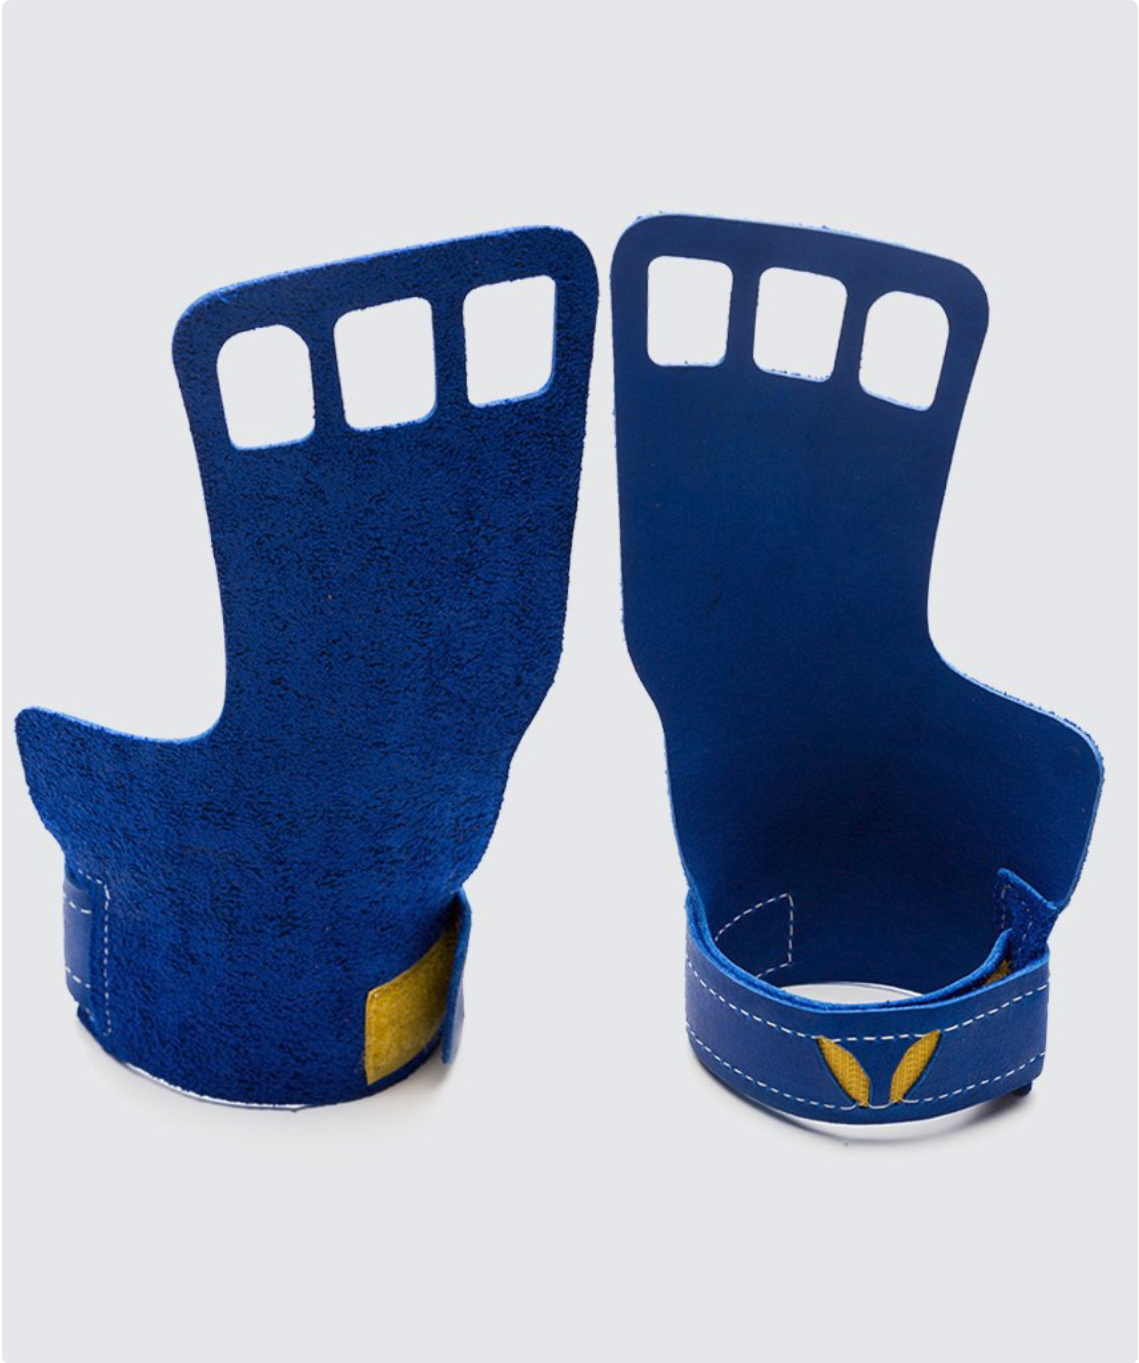 3 finger grips in leather color Blue - Victory Grip used for Crossfit pullups, muscle ups and barbell work.